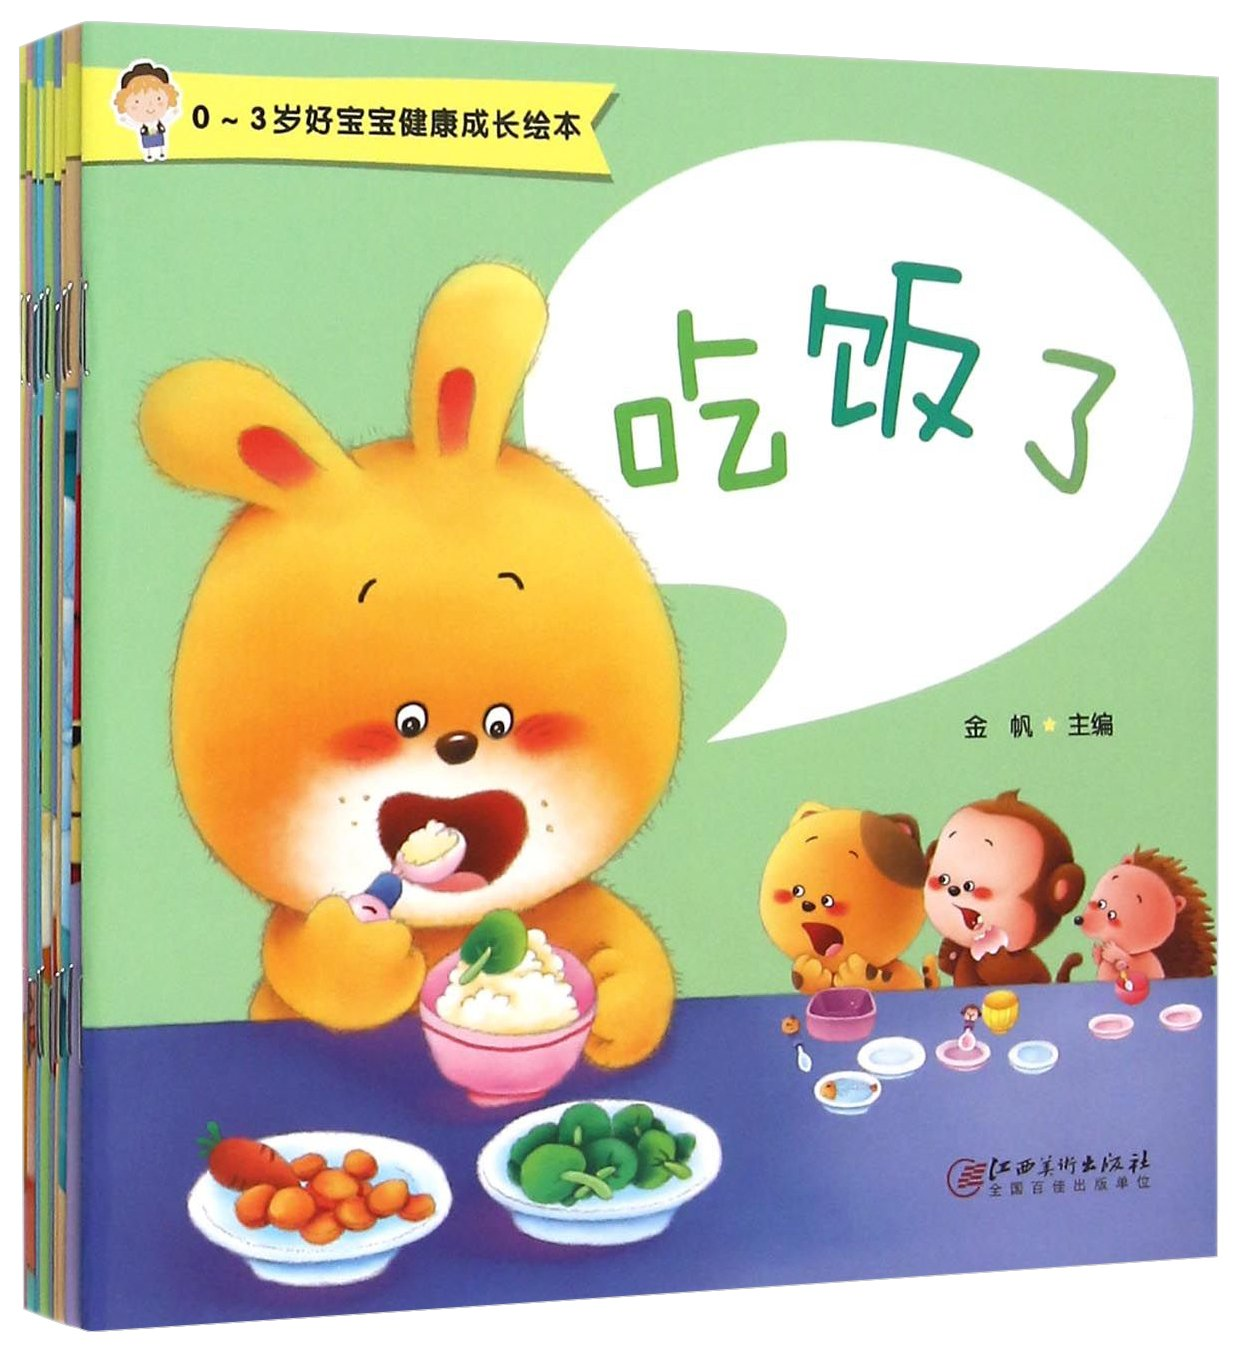 Healthy Growth Picture Books for Good Babies Aged 0-3 (10 Volumes) (Chinese Edition) PDF